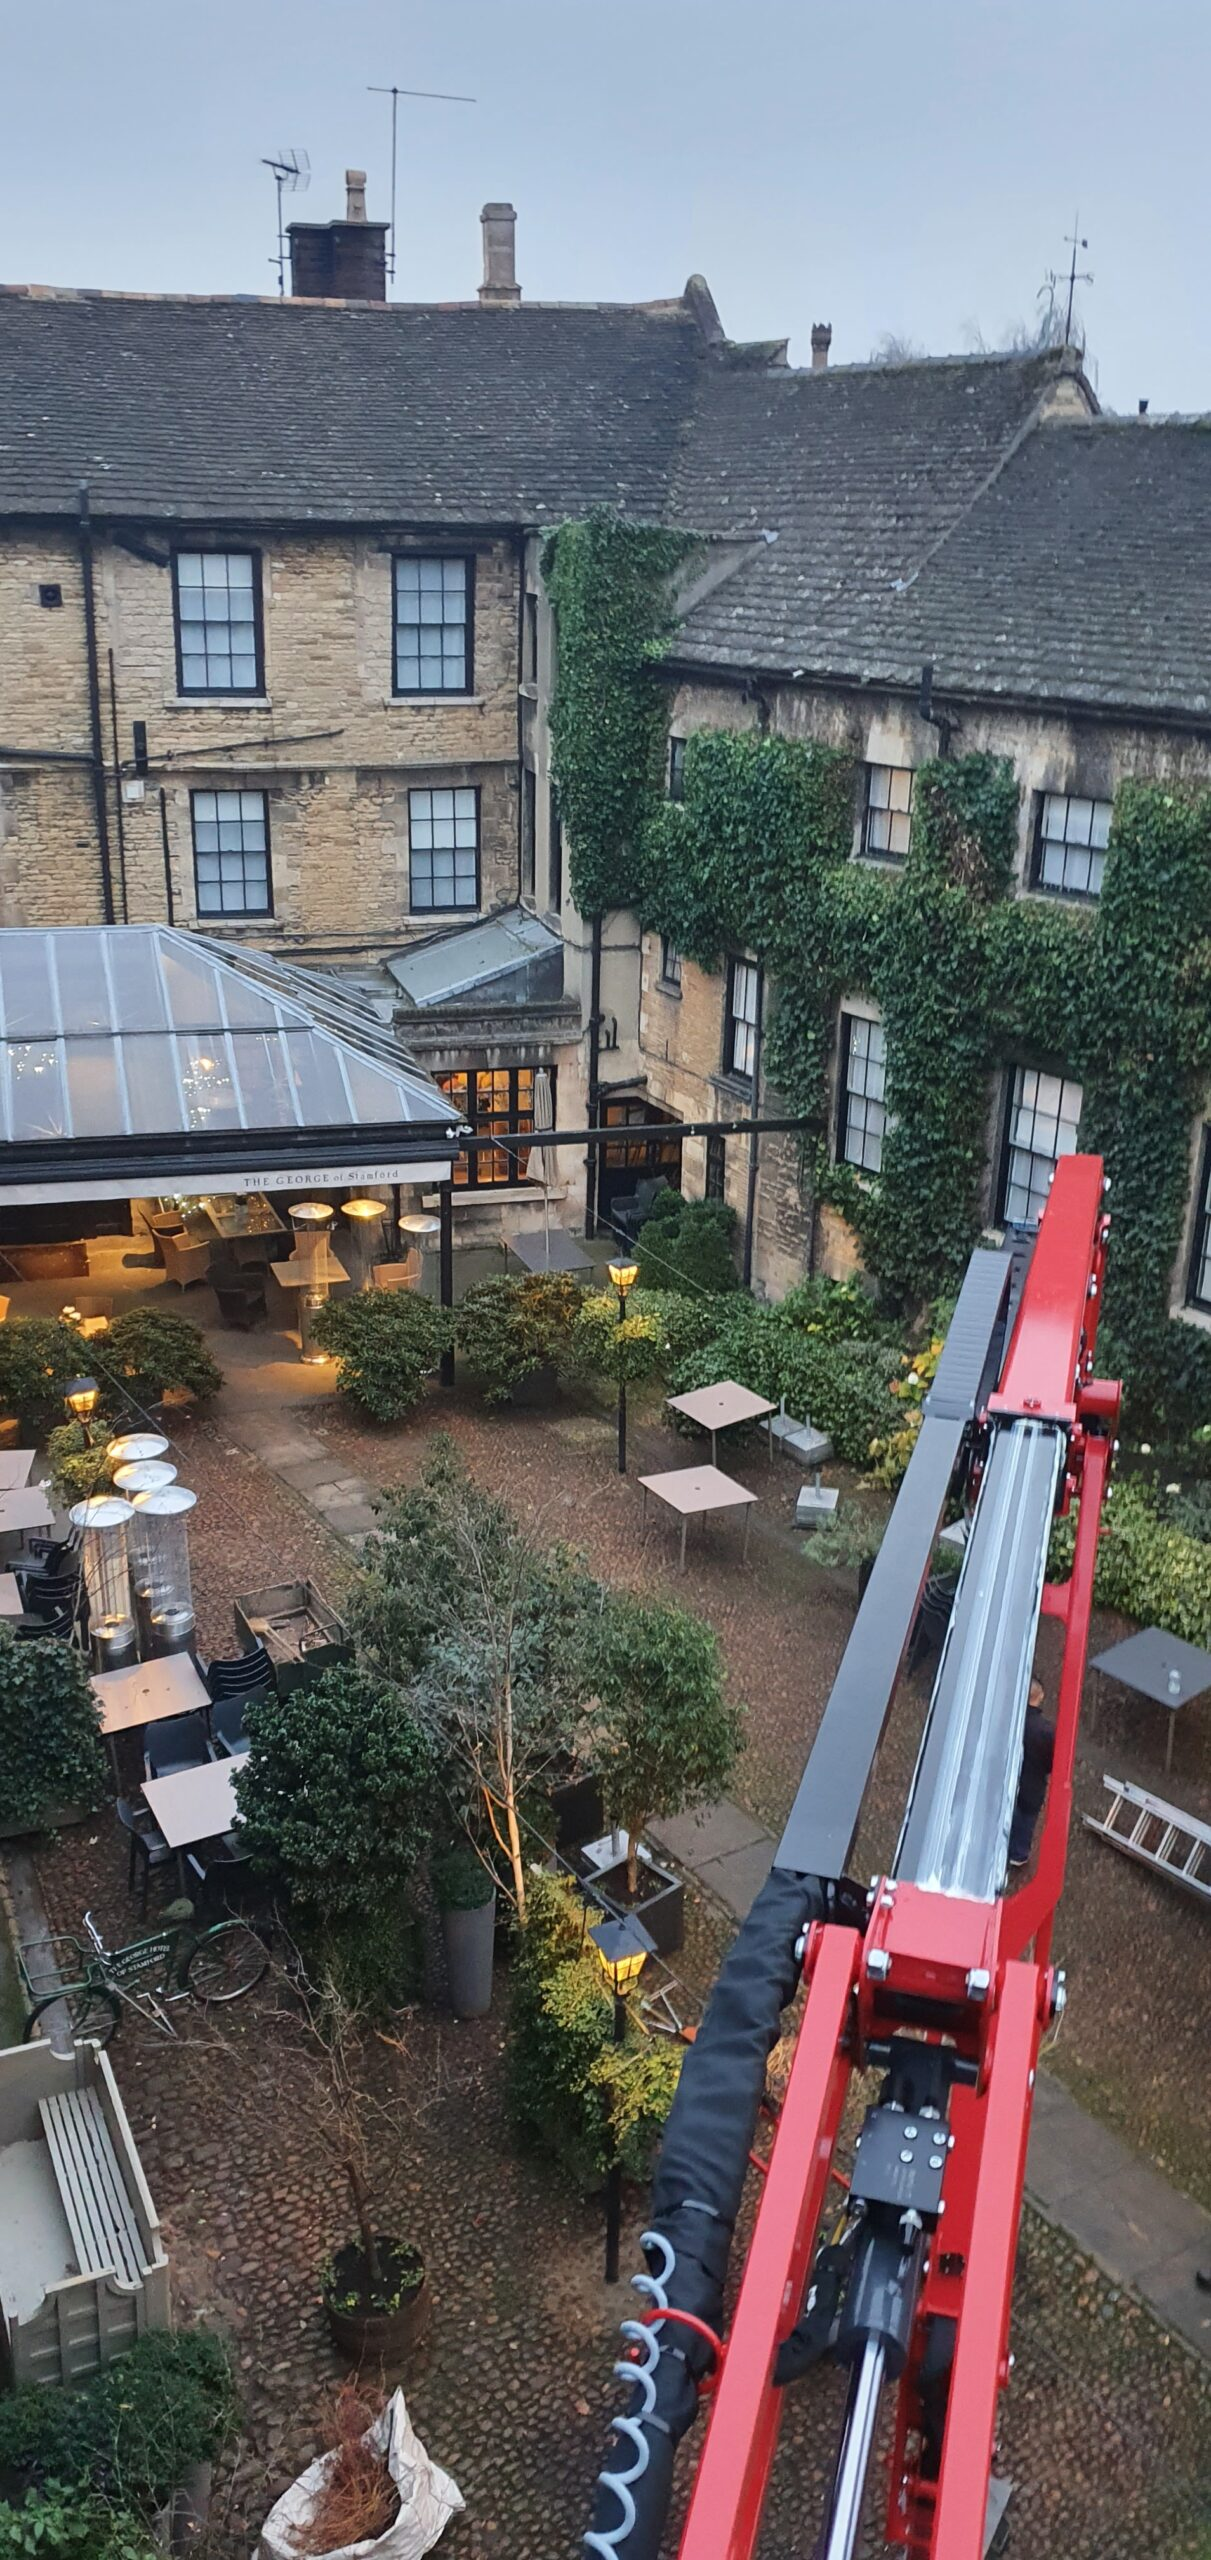 17m Hinowa 17.75m spiderlift trimming ivy in the courtyard of The George of Stamford - Access platfrom hire from Warren Access